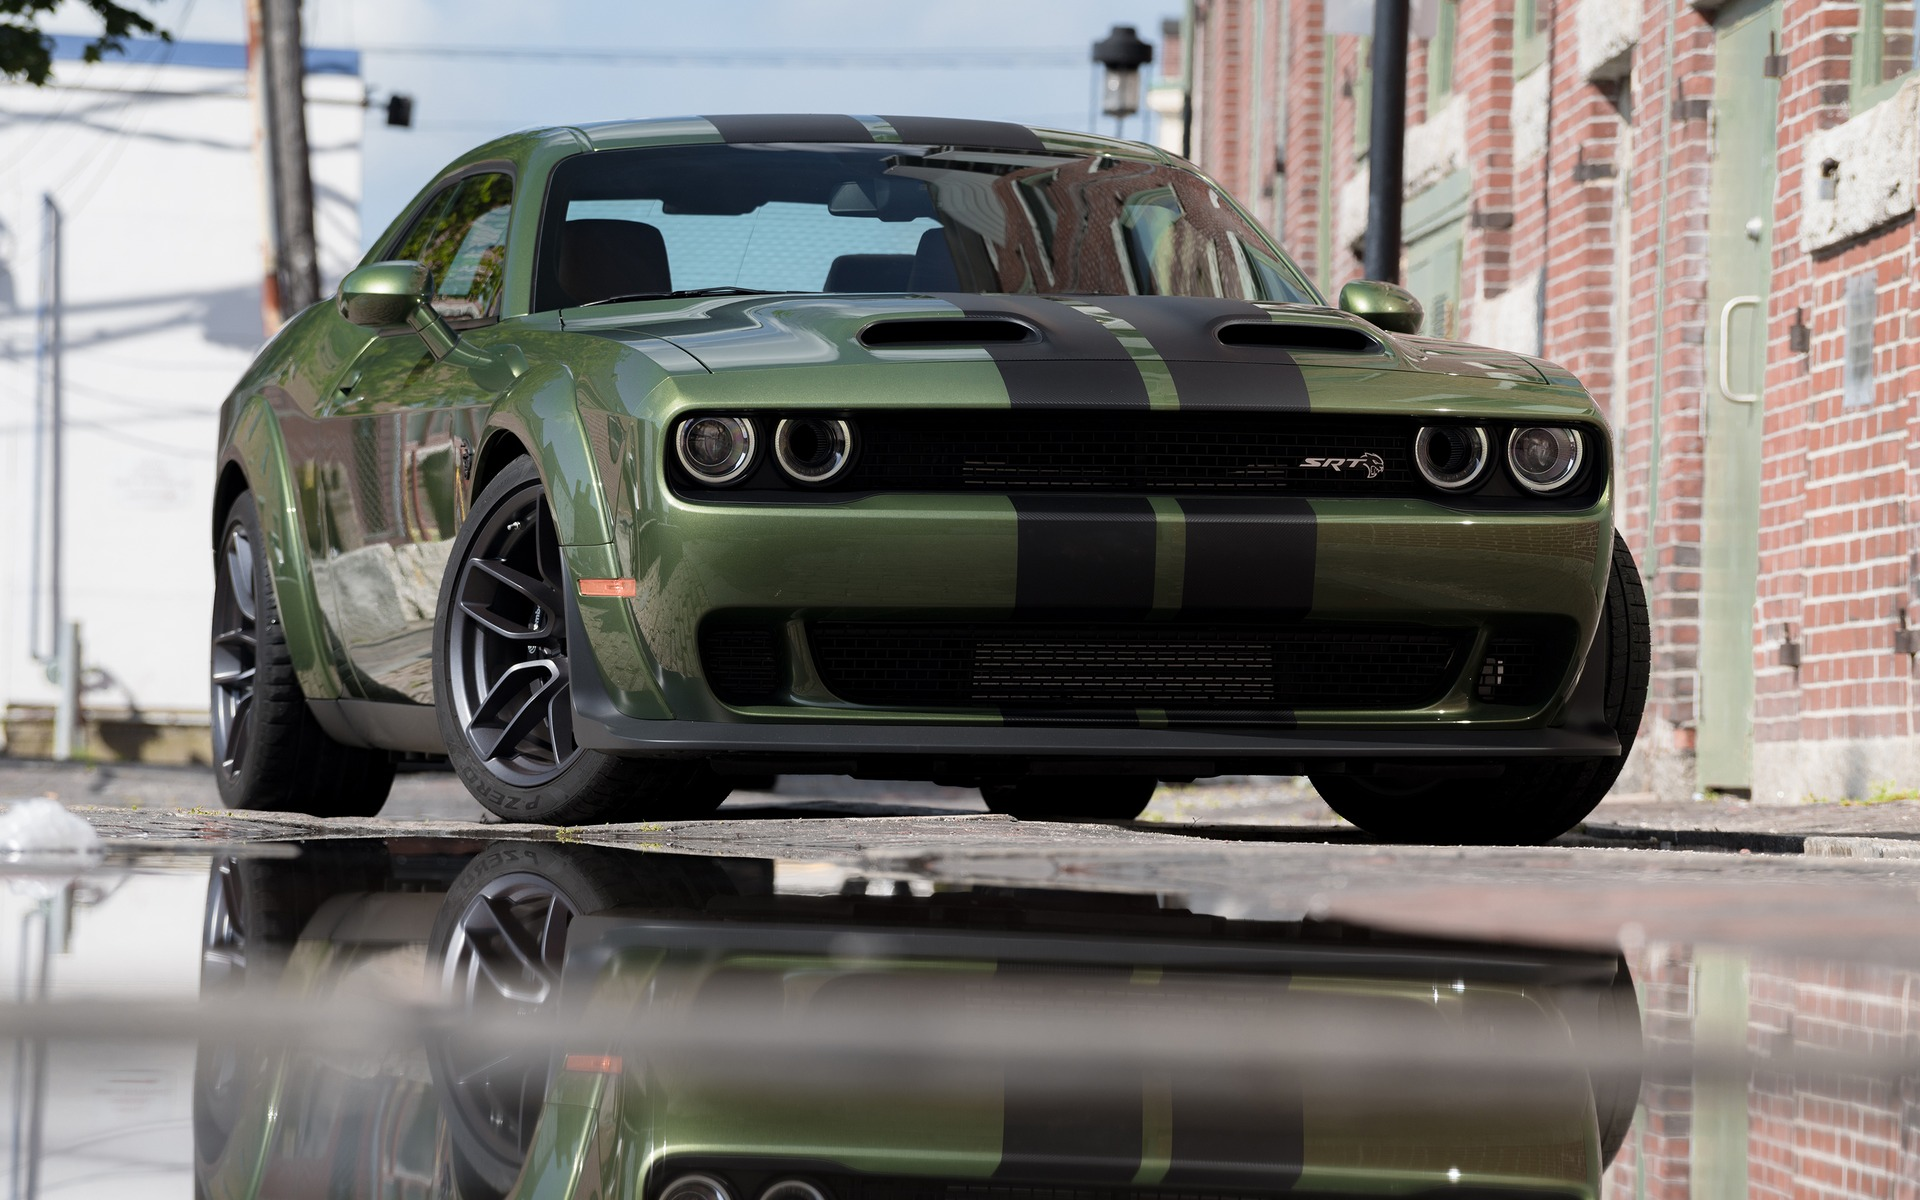 2019 Dodge Challenger Srt Hellcat Redeye Widebody Full Blast On The Track The Car Guide